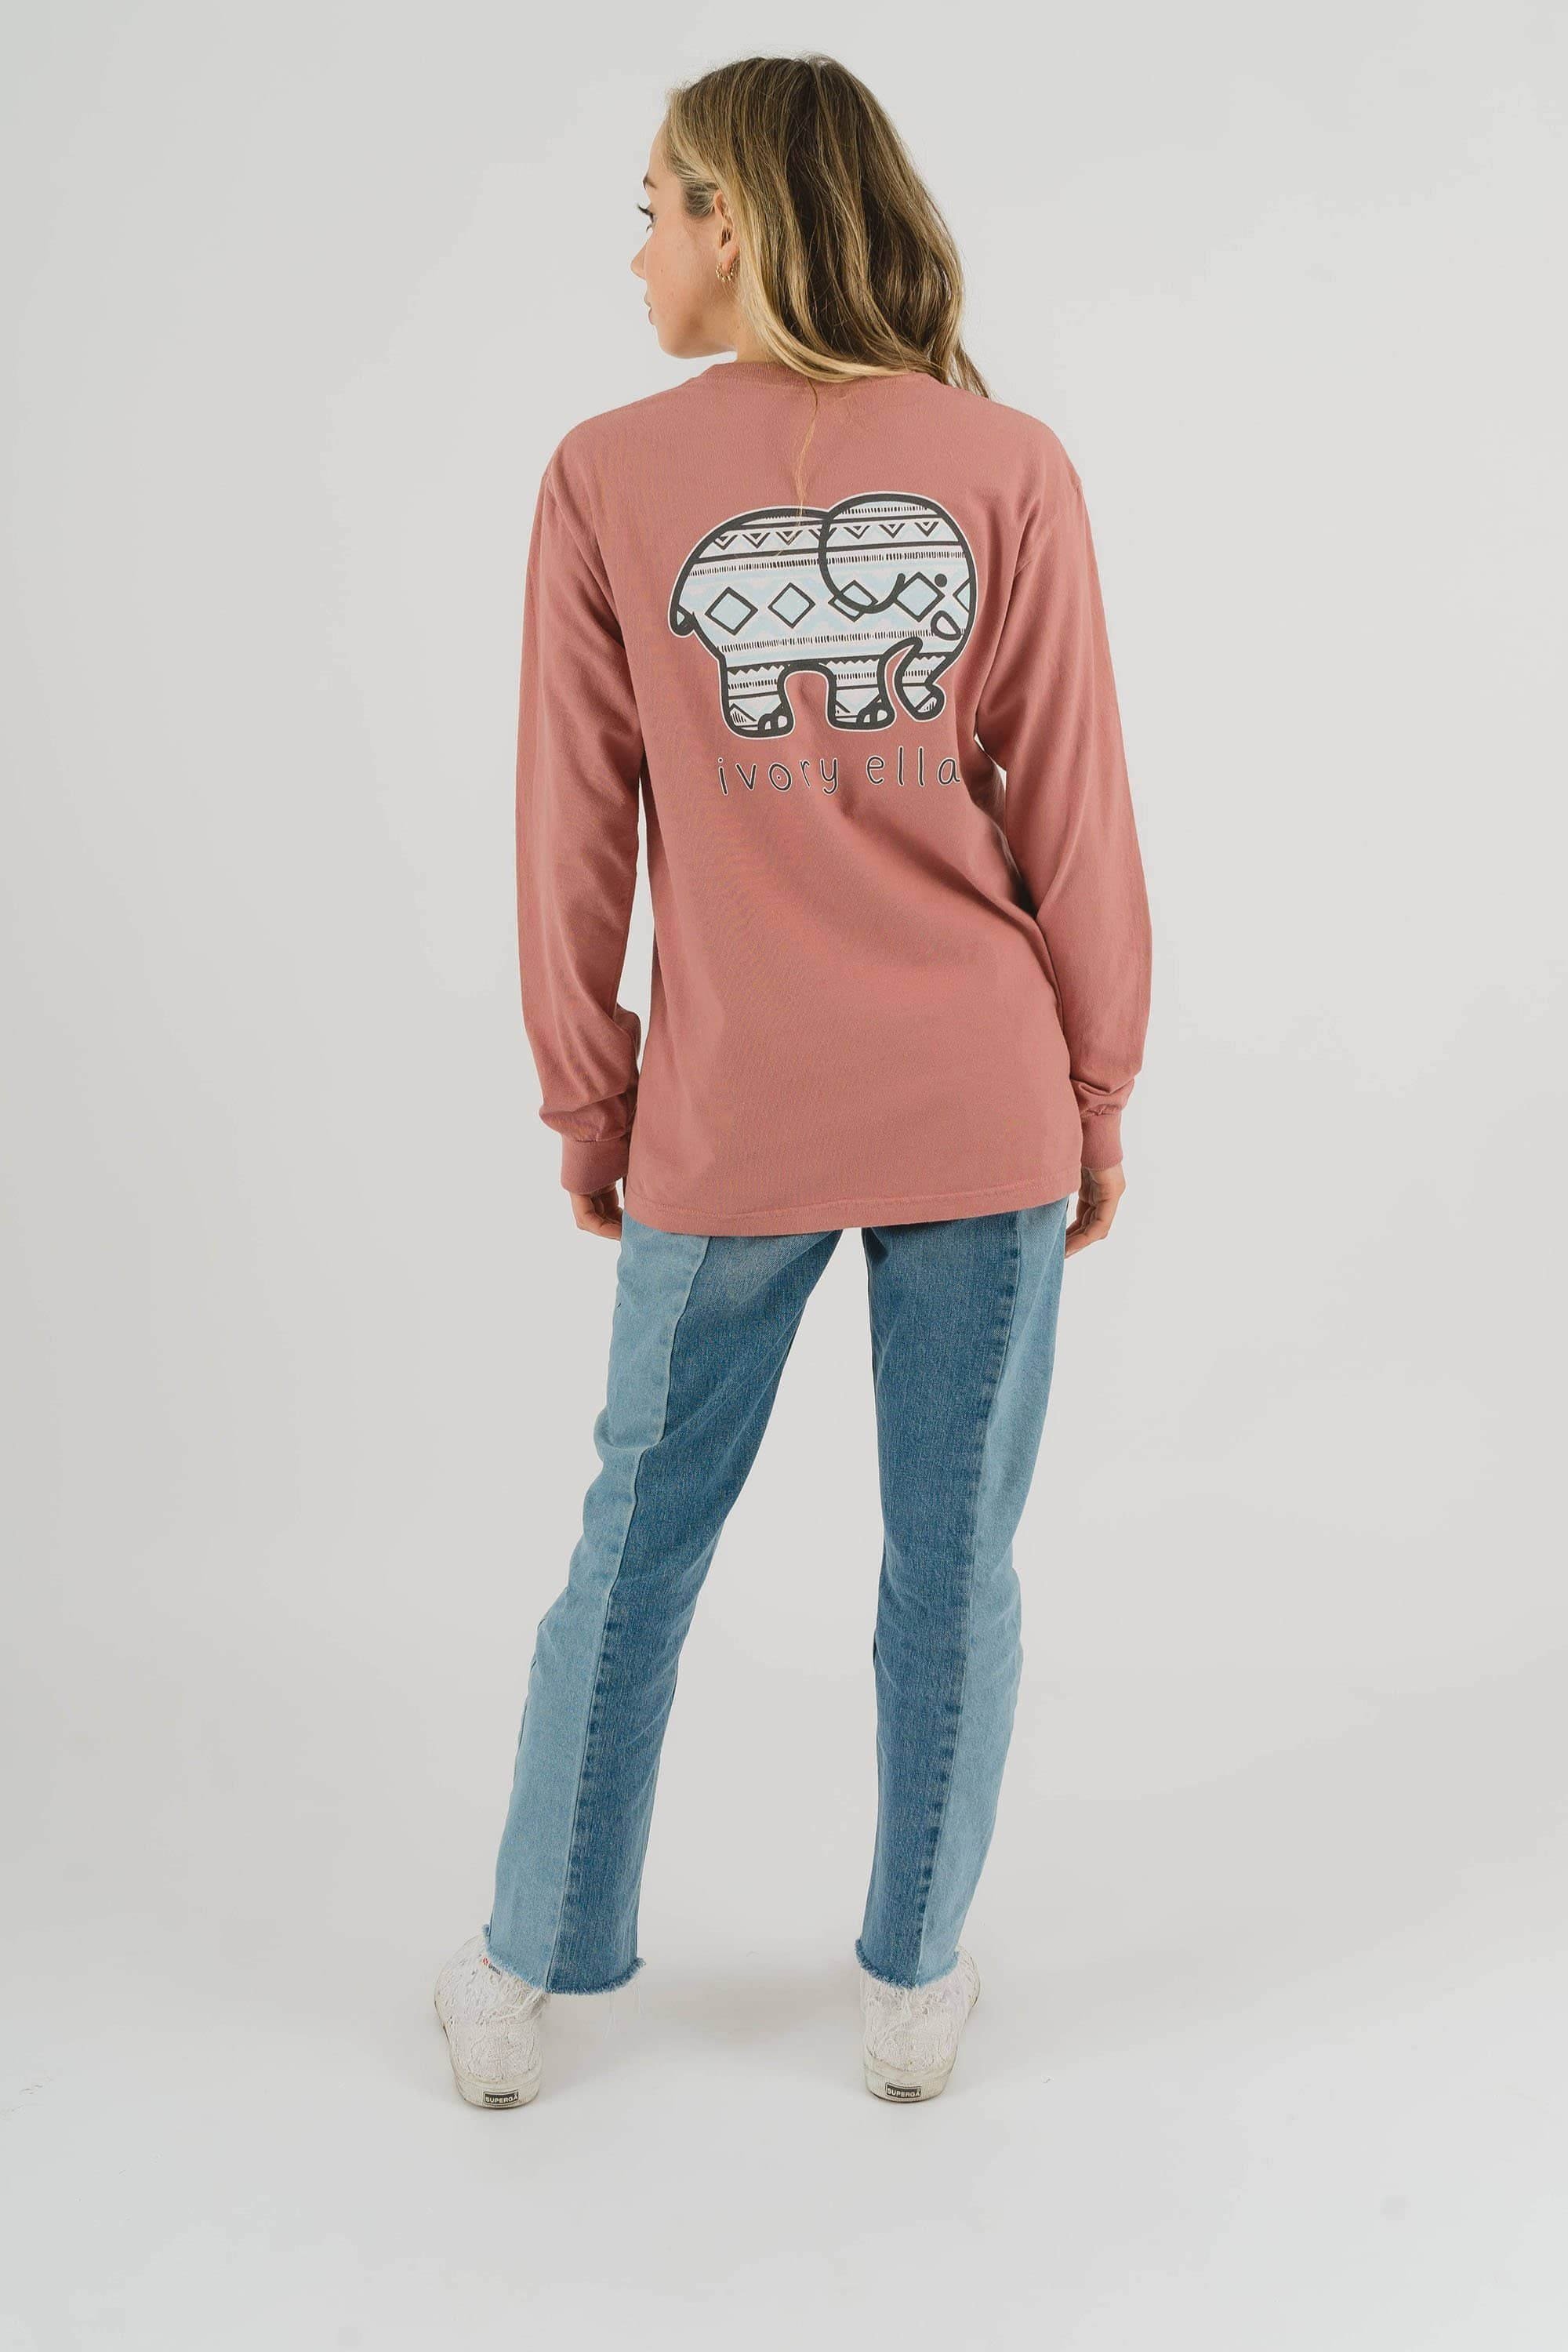 Classic Fit Vintage Rose Tribal Tee - Ivory Ella - Women's Long Sleeve Shirts